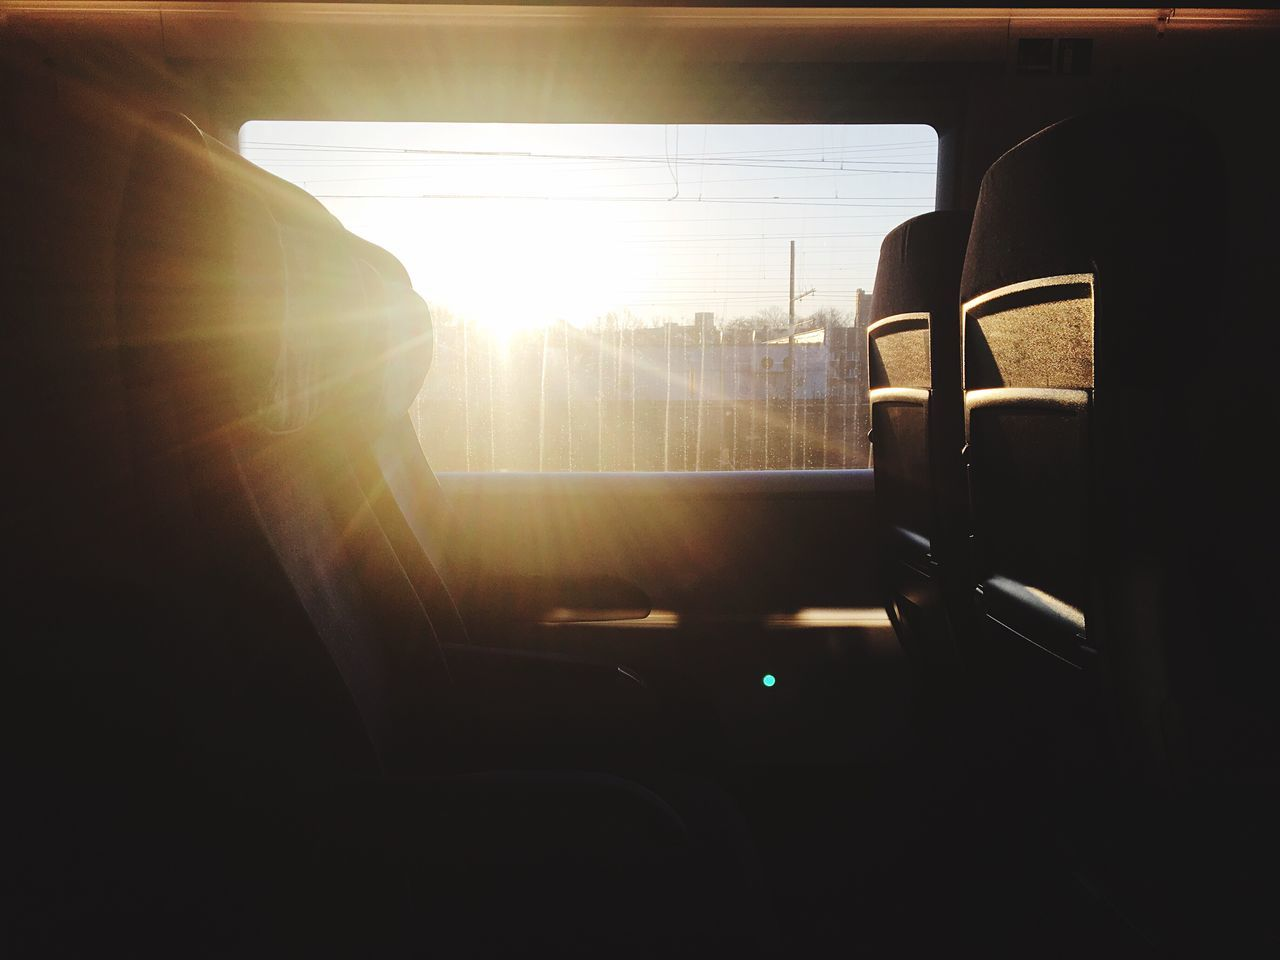 Transportation Vehicle Interior Car Land Vehicle Car Interior Sunlight Journey Mode Of Transport Day Indoors  No People Close-up